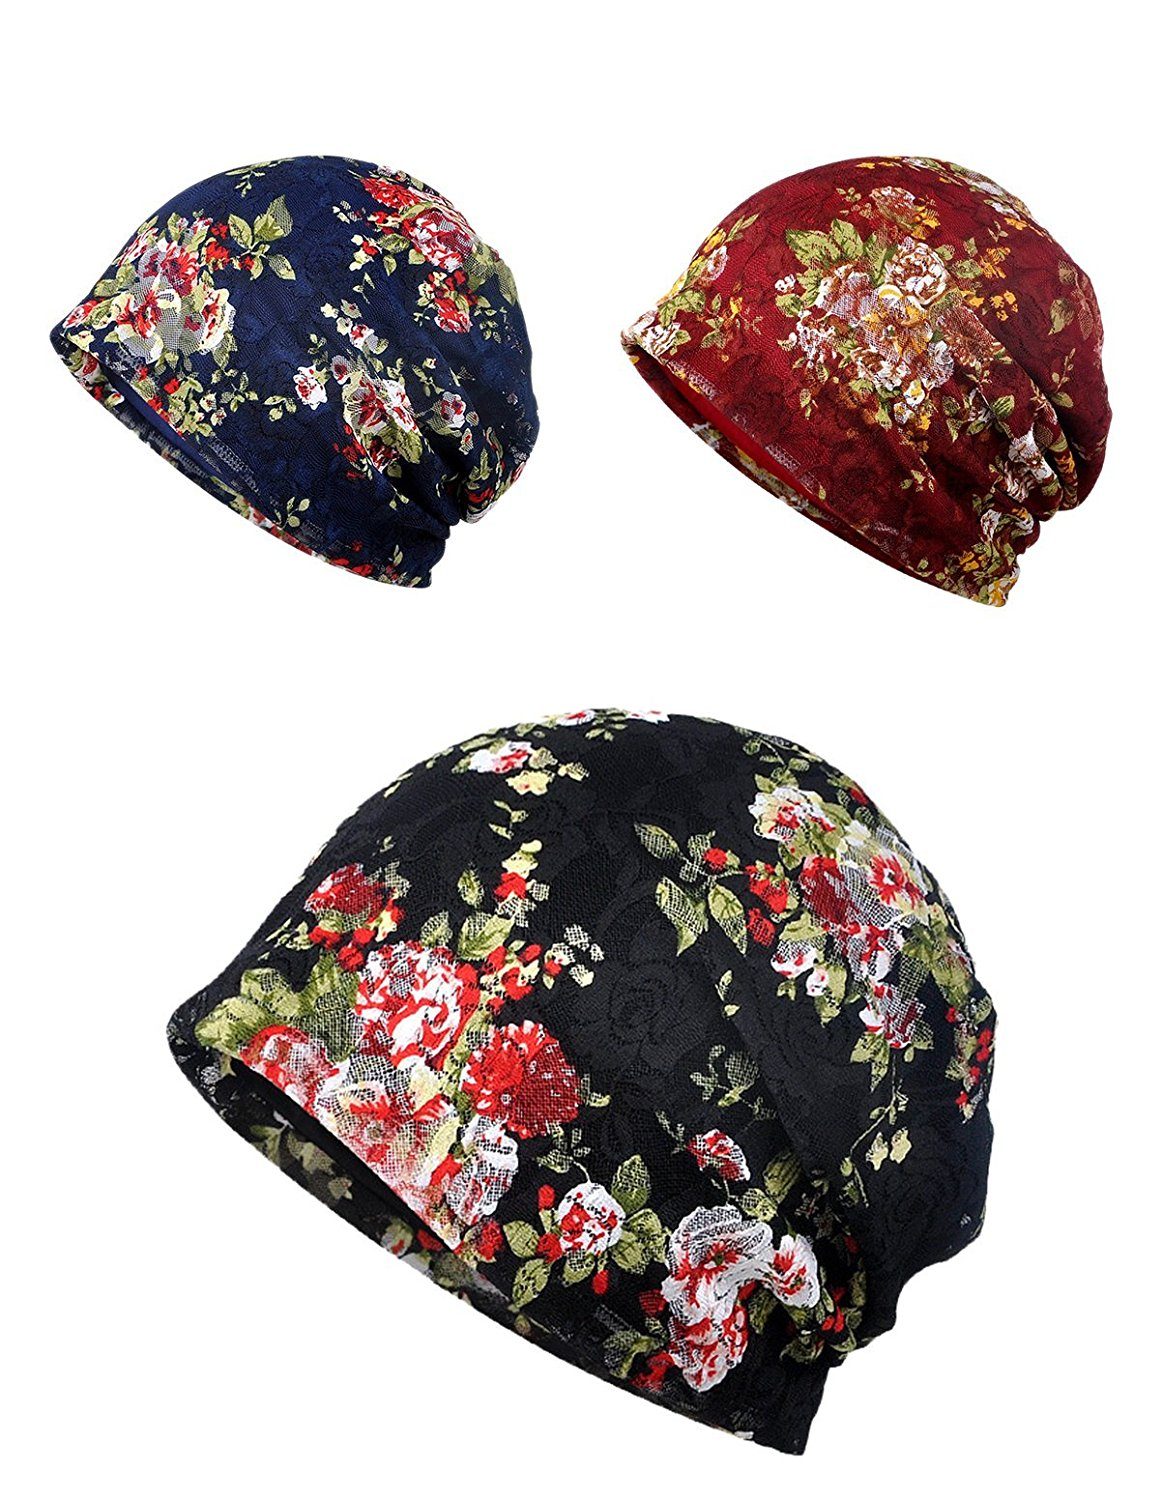 5c4132ff0f60a Cheap Headwear For Cancer Patients Uk